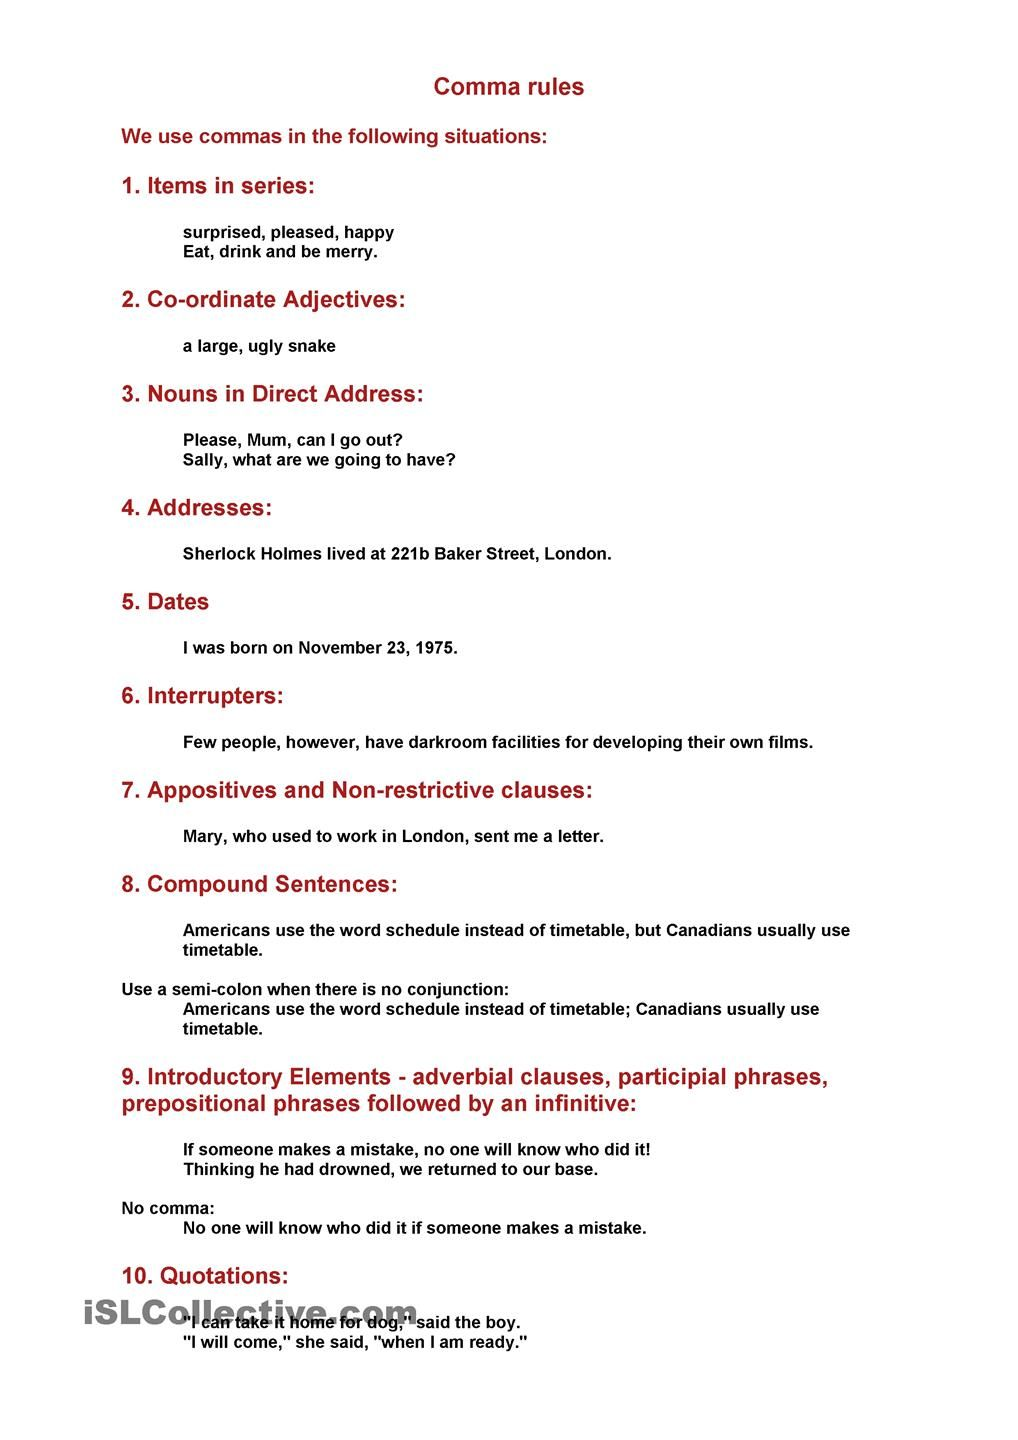 Worksheets Comma Rules Worksheet comma rules esl 2 pinterest punctuation worksheets and rules